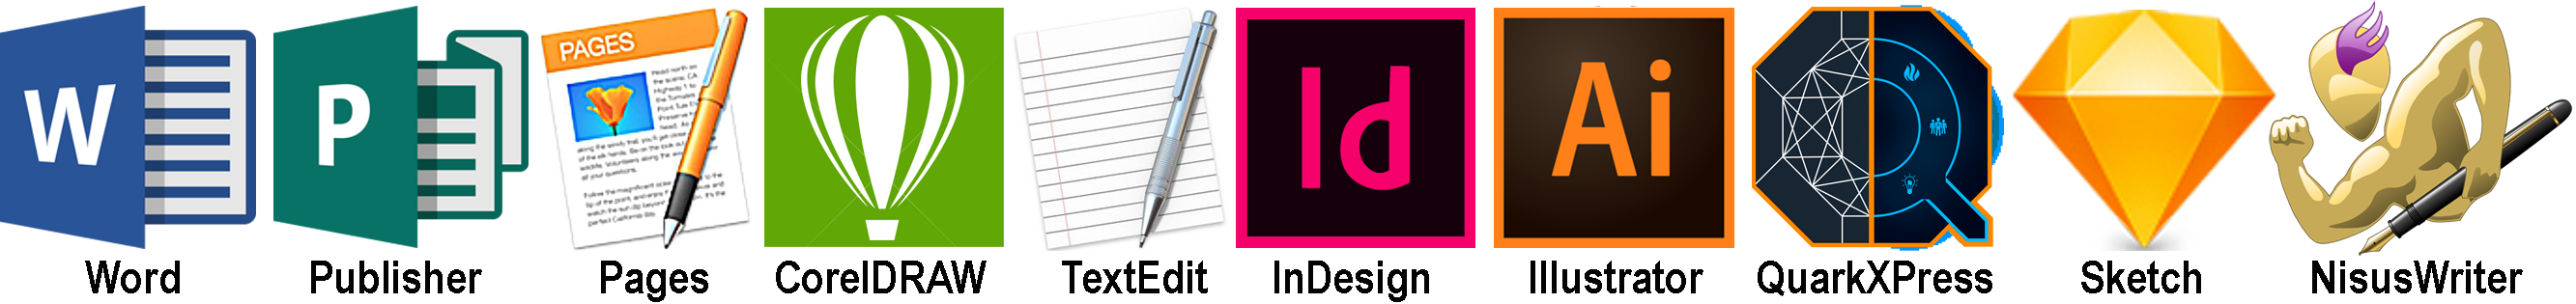 Recommended Applications - Word, Publisher, Pages, CoreDRAW, TextEdit, InDesign, Illustrator, QuarkXPress, Sketch, NisusWriter.